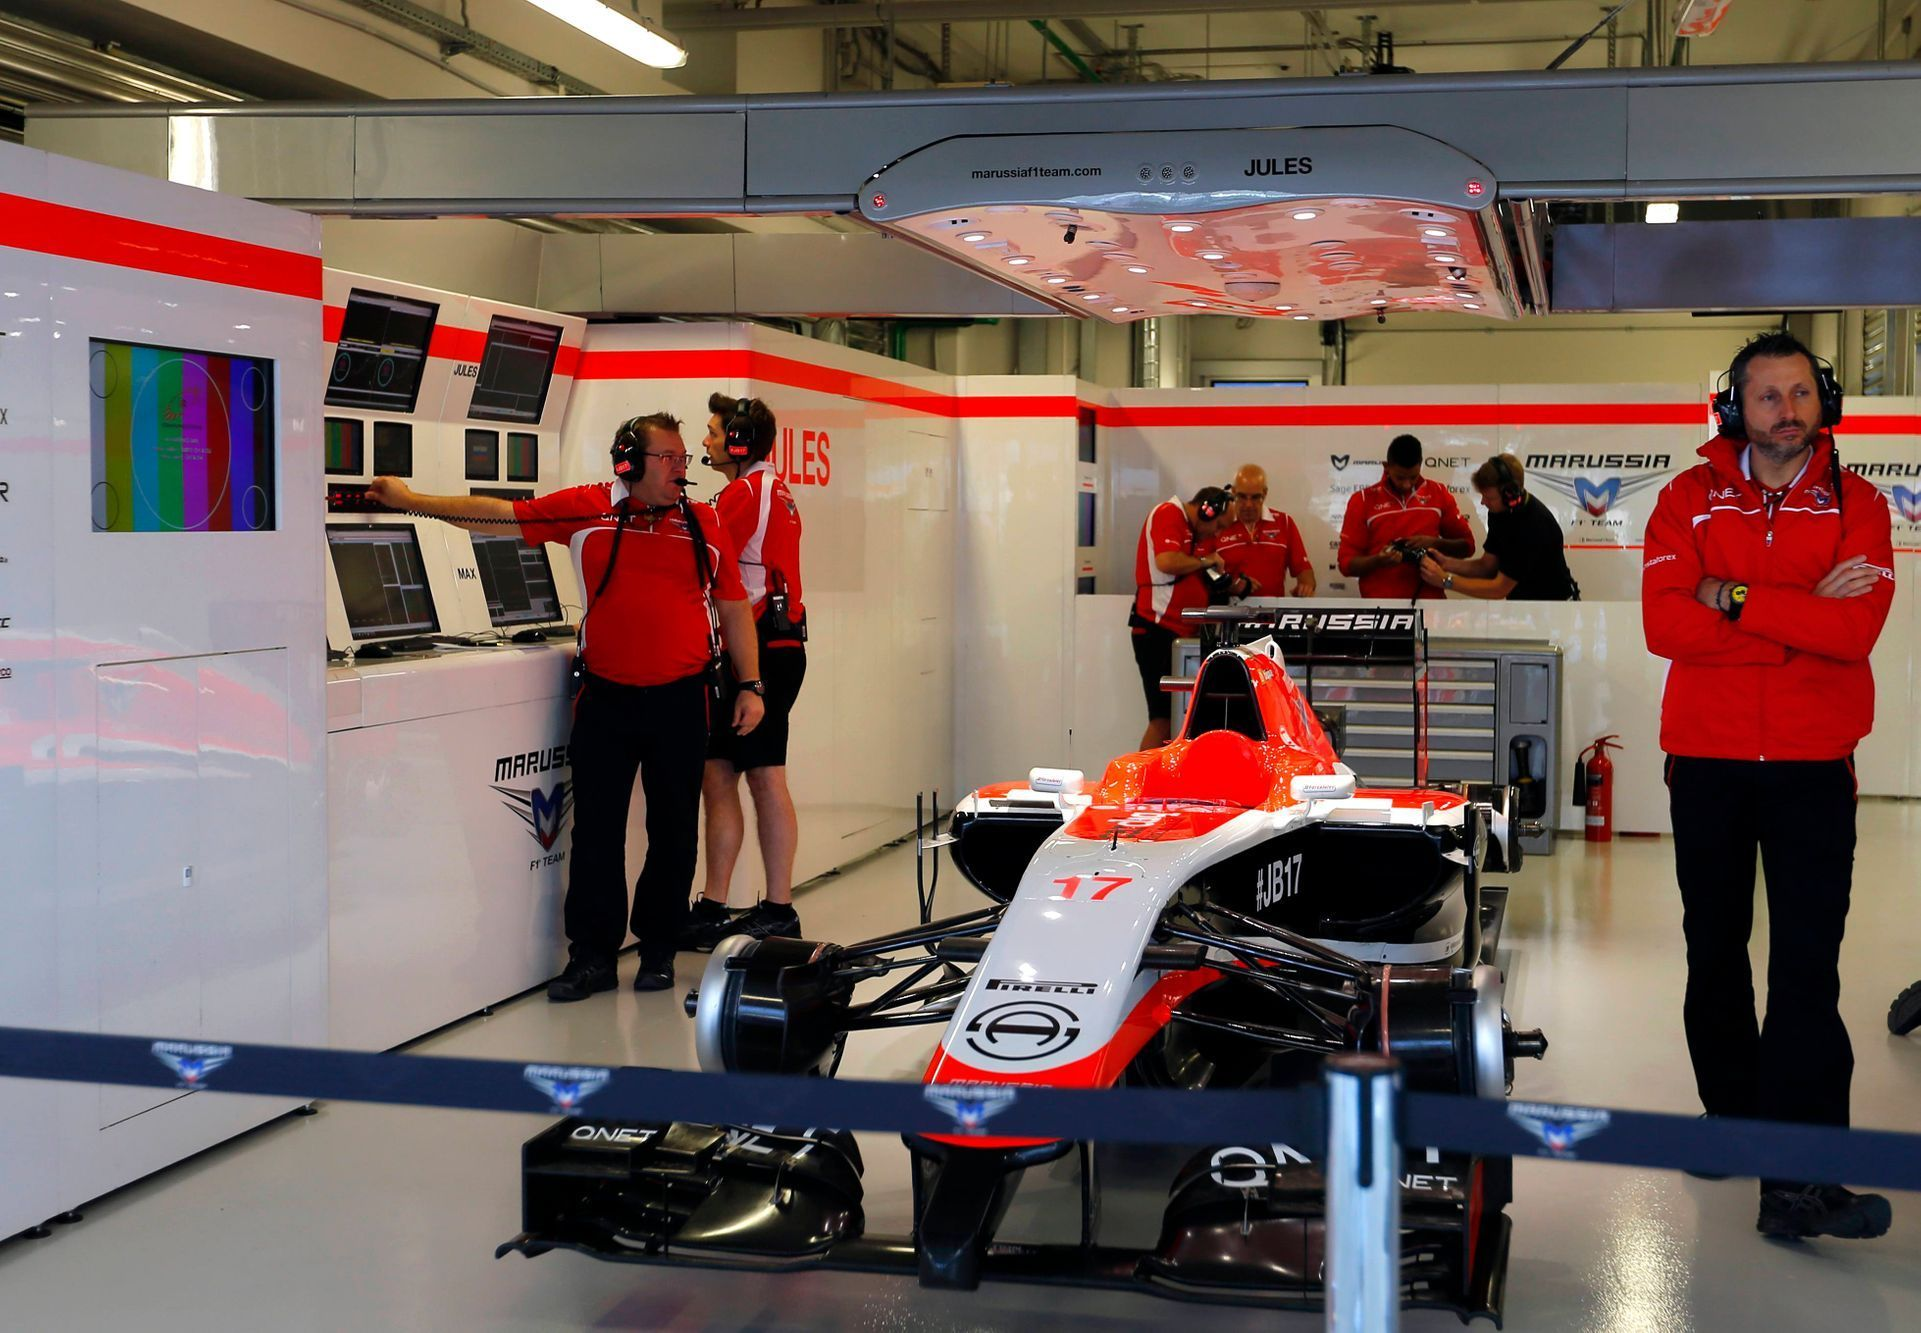 The car of Marussia Formula One driver Jules Bianchi of France is pictured in the garage during the first free practice session of the  Russian F1 Grand Prix in the Sochi Autodrom circuit